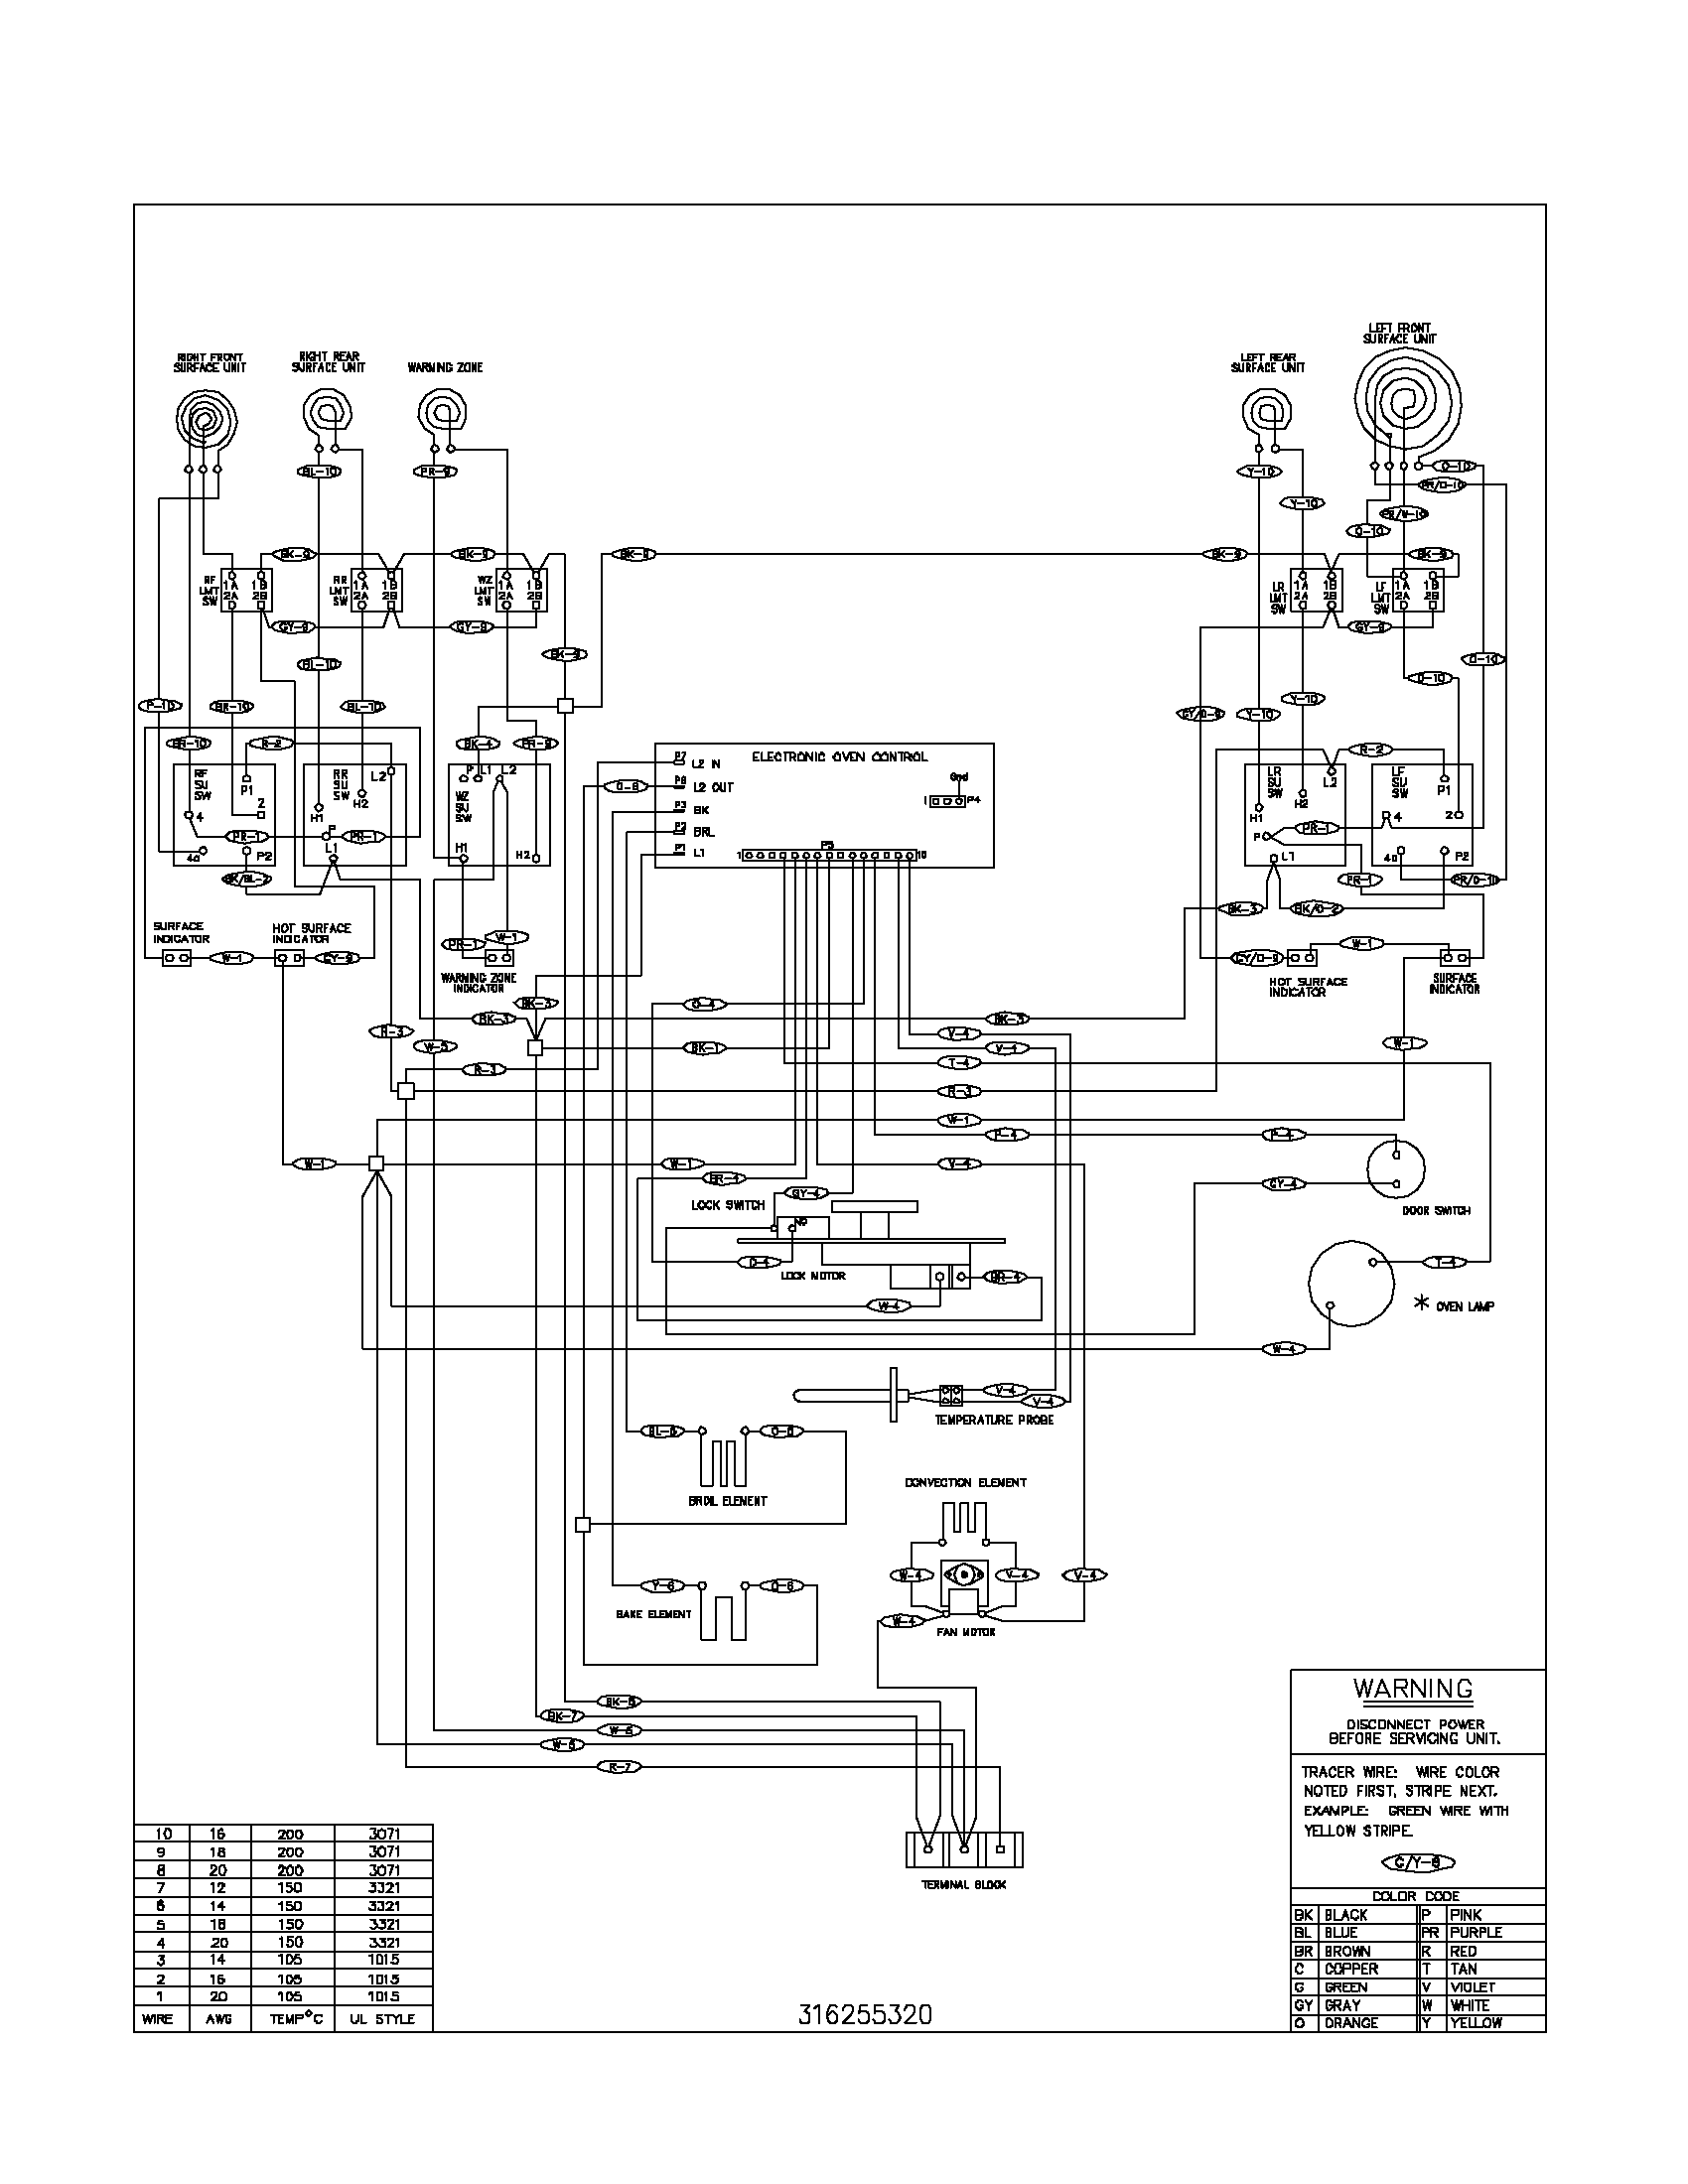 wiring diagram parts whirlpool fefl88acc electric range timer stove clocks and wiring diagram for electric fireplace at crackthecode.co